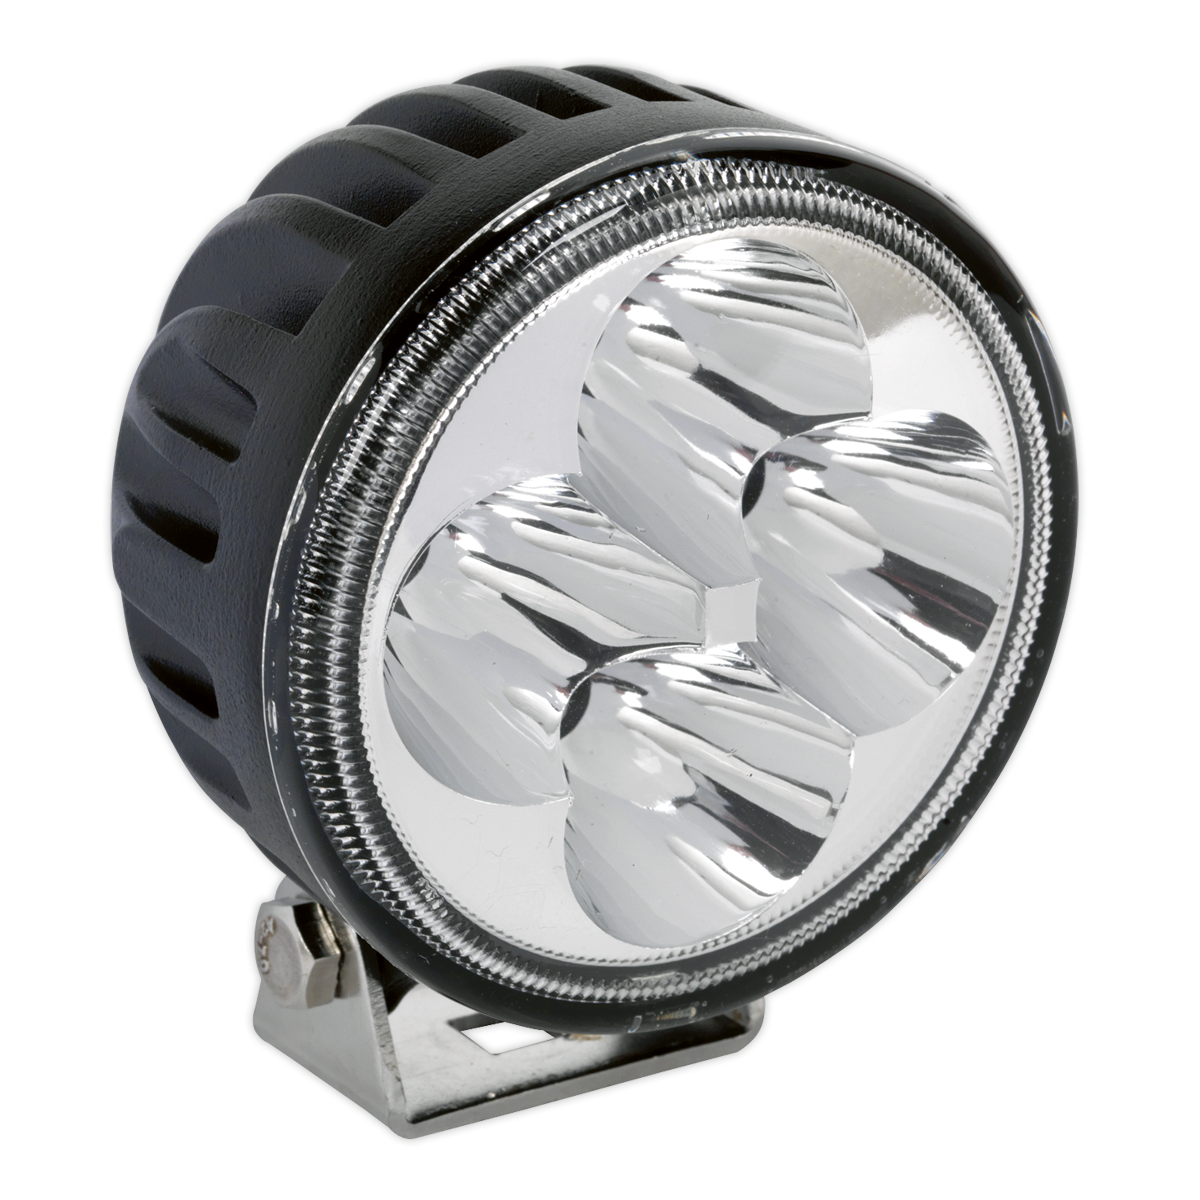 Off-Road Work Spotlight 4 LED 12W 9-32V DC